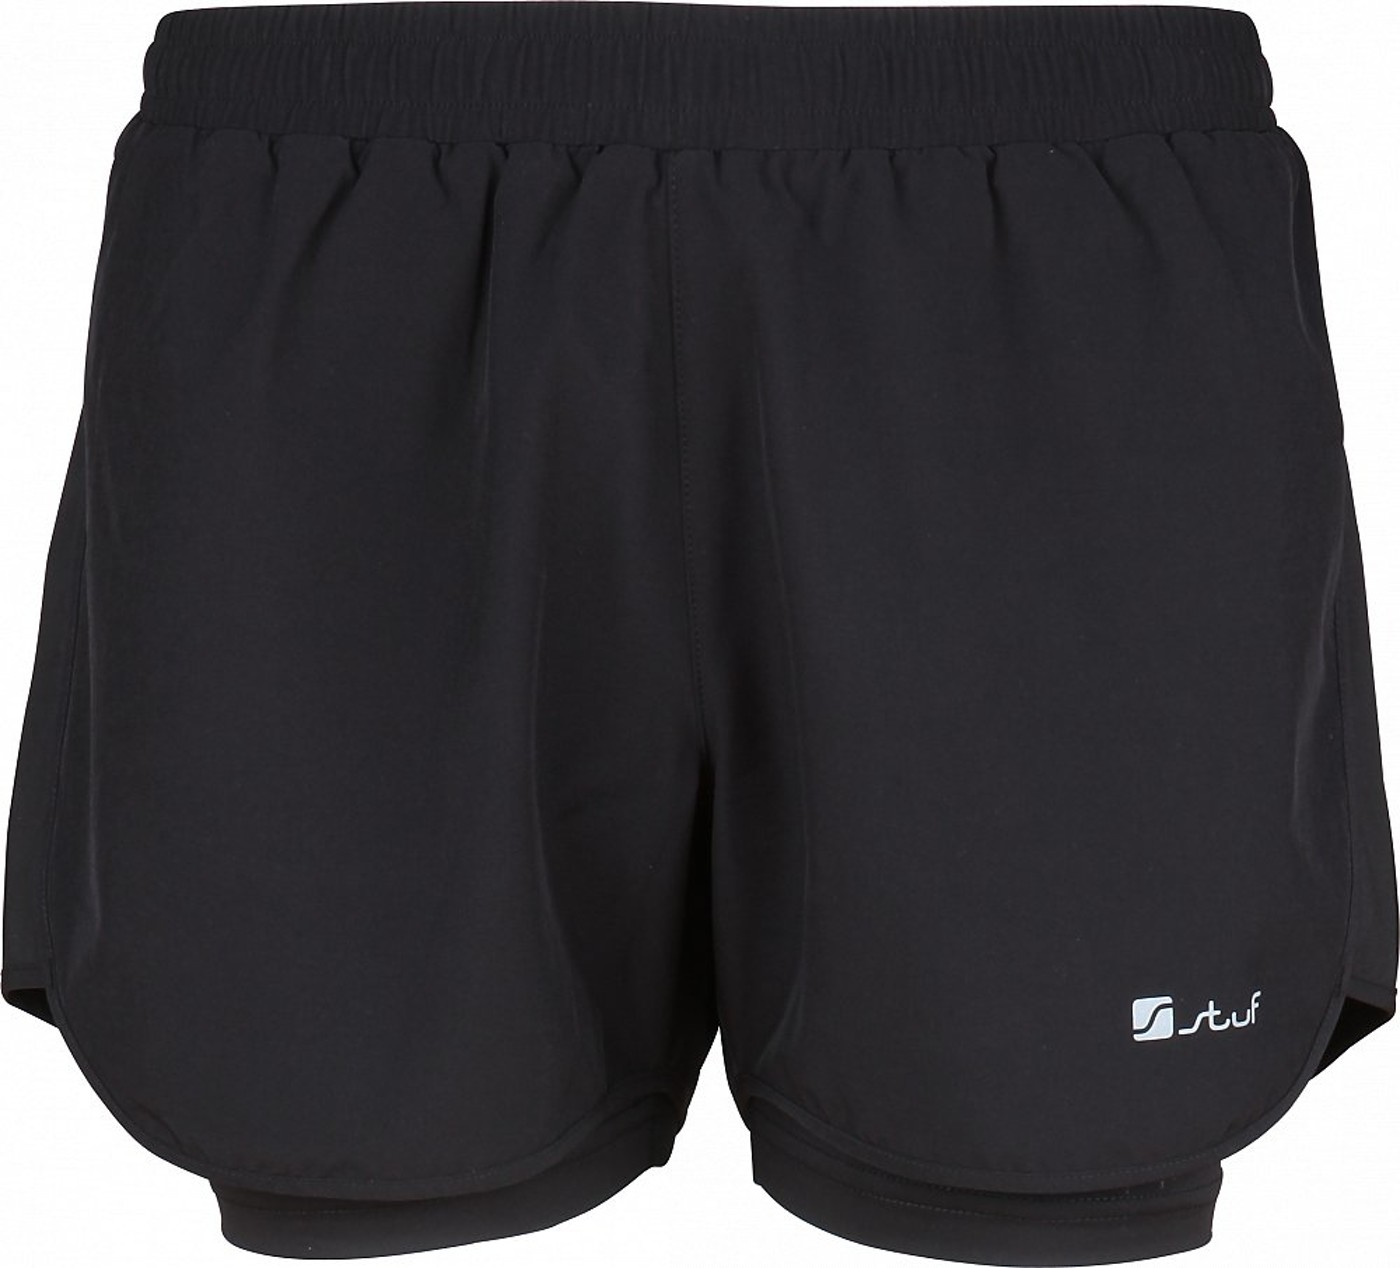 STUF KATIE Short 2in1 - Damen